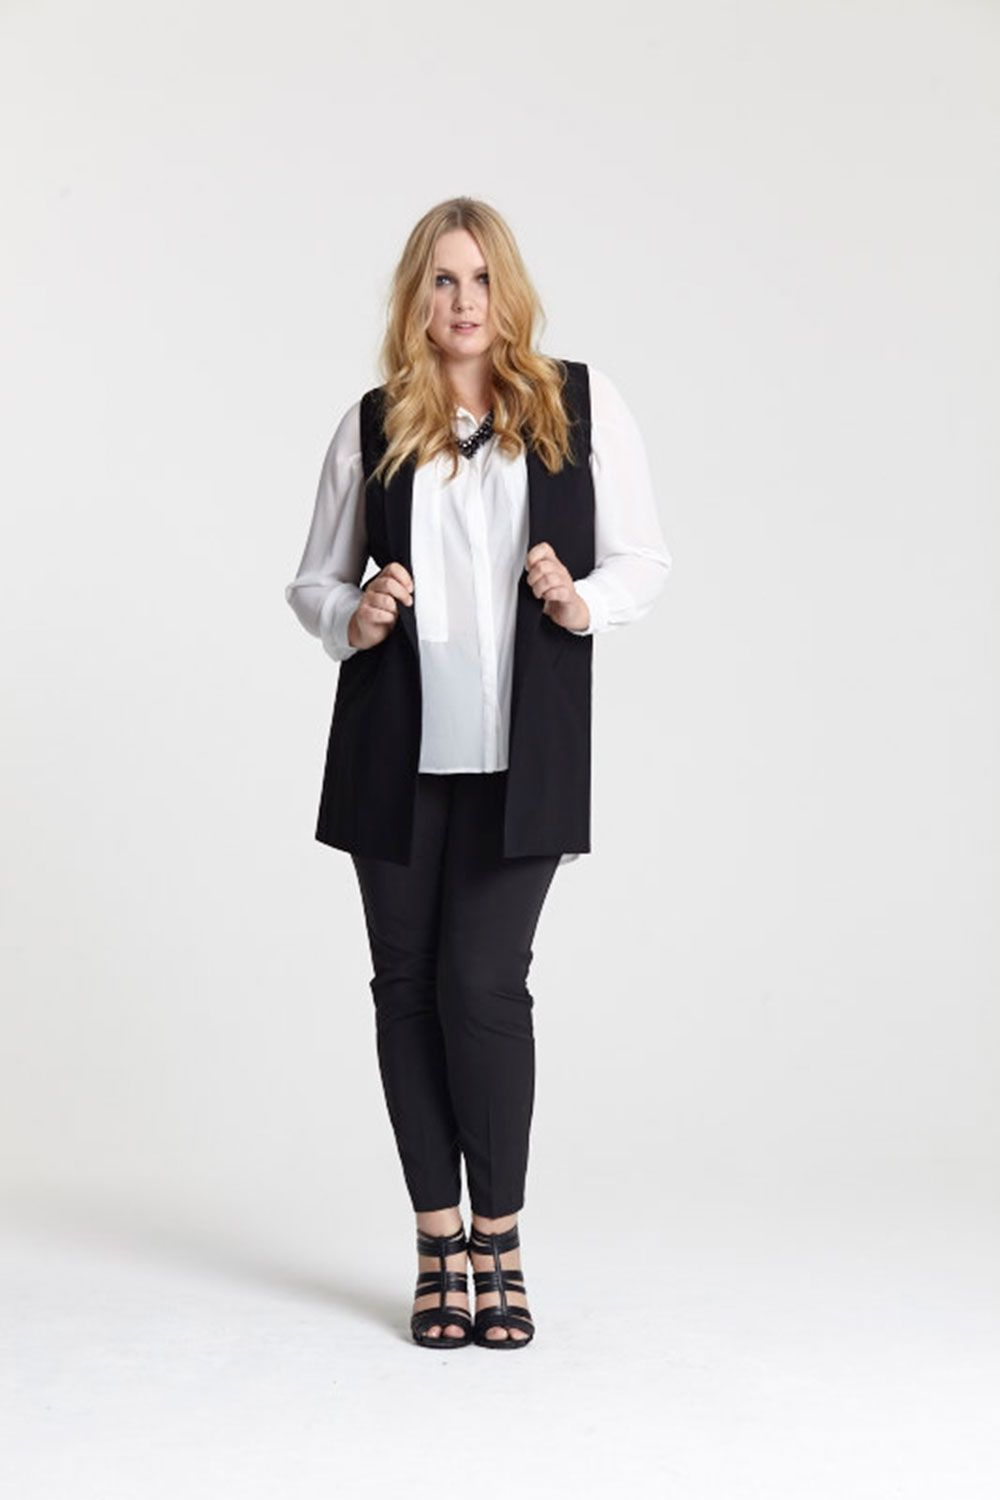 """<a target=""""_blank"""" href=""""http://www.evans.co.uk/en/evuk/product/clothing-250468/as-seen-on-the-catwalk-4743483/evans-black-sleeveless-jacket-4741693?bi=1&ps=20&cat1=209427&cat2=2577822&productId=21367849&cmpid=par_1_cosmo_wk3_fashfest_03J22TBLK"""">Buy the waistcoat</a>, <a target=""""_blank"""" href=""""http://www.evans.co.uk/en/evuk/product/clothing-250468/as-seen-on-the-catwalk-4743483/evans-black-tapered-trousers-4023275?bi=1&ps=20&cat1=209427&cat2=2577822&productId=16764922&cmpid=par_1_cosmo_wk3_fashfest_03R18RBLK"""">trousers</a>, <a target=""""_blank"""" href=""""http://www.evans.co.uk/en/evuk/product/clothing-250468/as-seen-on-the-catwalk-4743483/collection-ivory-panel-shirt-4717710?bi=1&ps=20&cat1=209427&cat2=2577822&productId=21204003&cmpid=par_1_cosmo_wk3_fashfest_07C01TIVR"""">shirt</a>, <a target=""""_blank"""" href=""""http://www.evans.co.uk/en/evuk/category/clothing-250468/as-seen-on-the-catwalk-4743483?cat1=209427&cat2=2577822&cmpid=par_1_cosmo_wk3_fashfest_jetnecklace"""">necklace</a> and <a target=""""_blank"""" href=""""http://www.evans.co.uk/en/evuk/category/clothing-250468/as-seen-on-the-catwalk-4743483?cat1=209427&cat2=2577822&cmpid=par_1_cosmo_wk3_fashfest_blacksandal"""">heels</a>"""